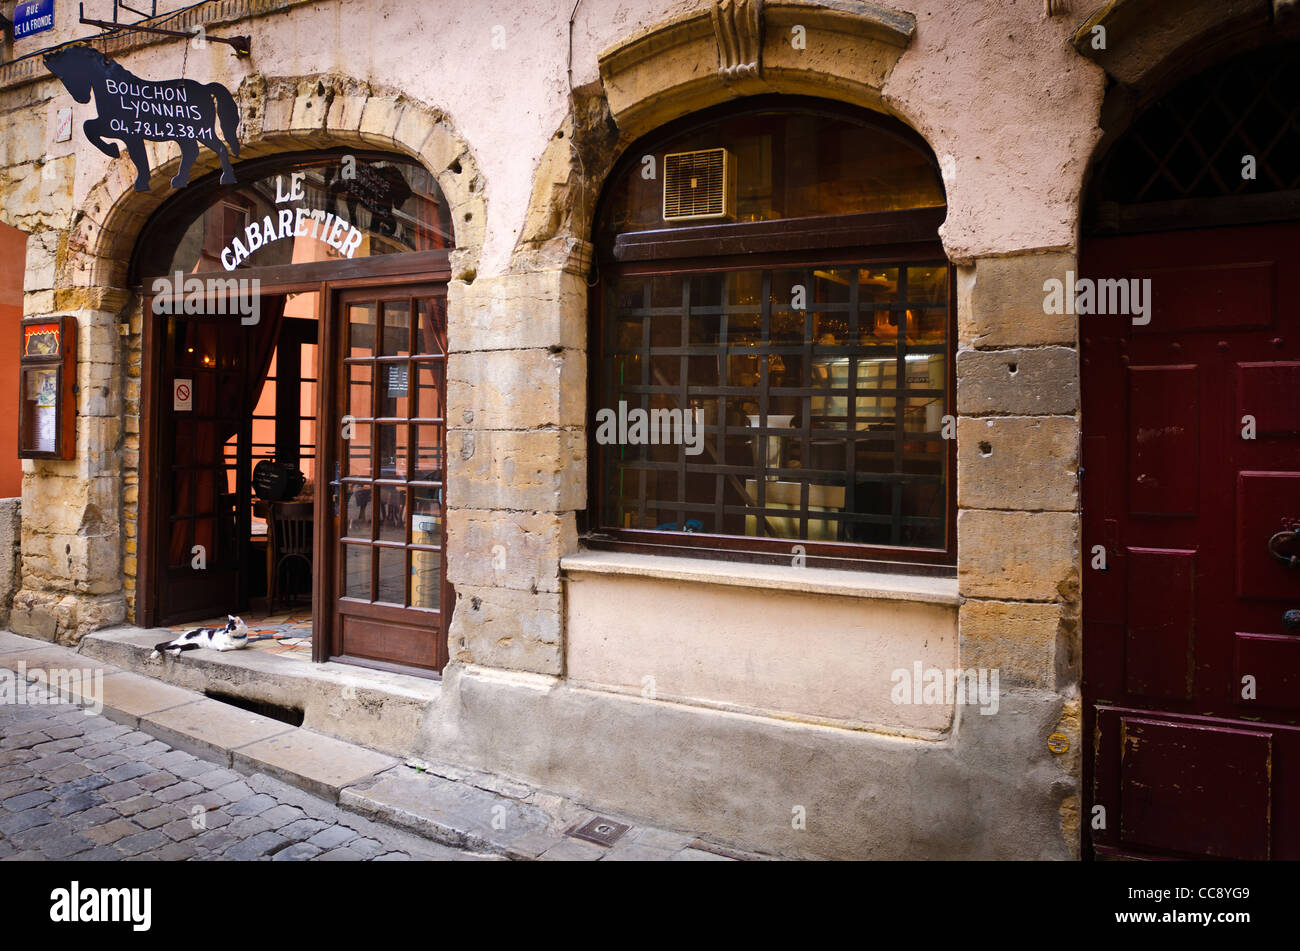 le cabaretier restaurant in old town vieux lyon france unesco world stock photo royalty free. Black Bedroom Furniture Sets. Home Design Ideas